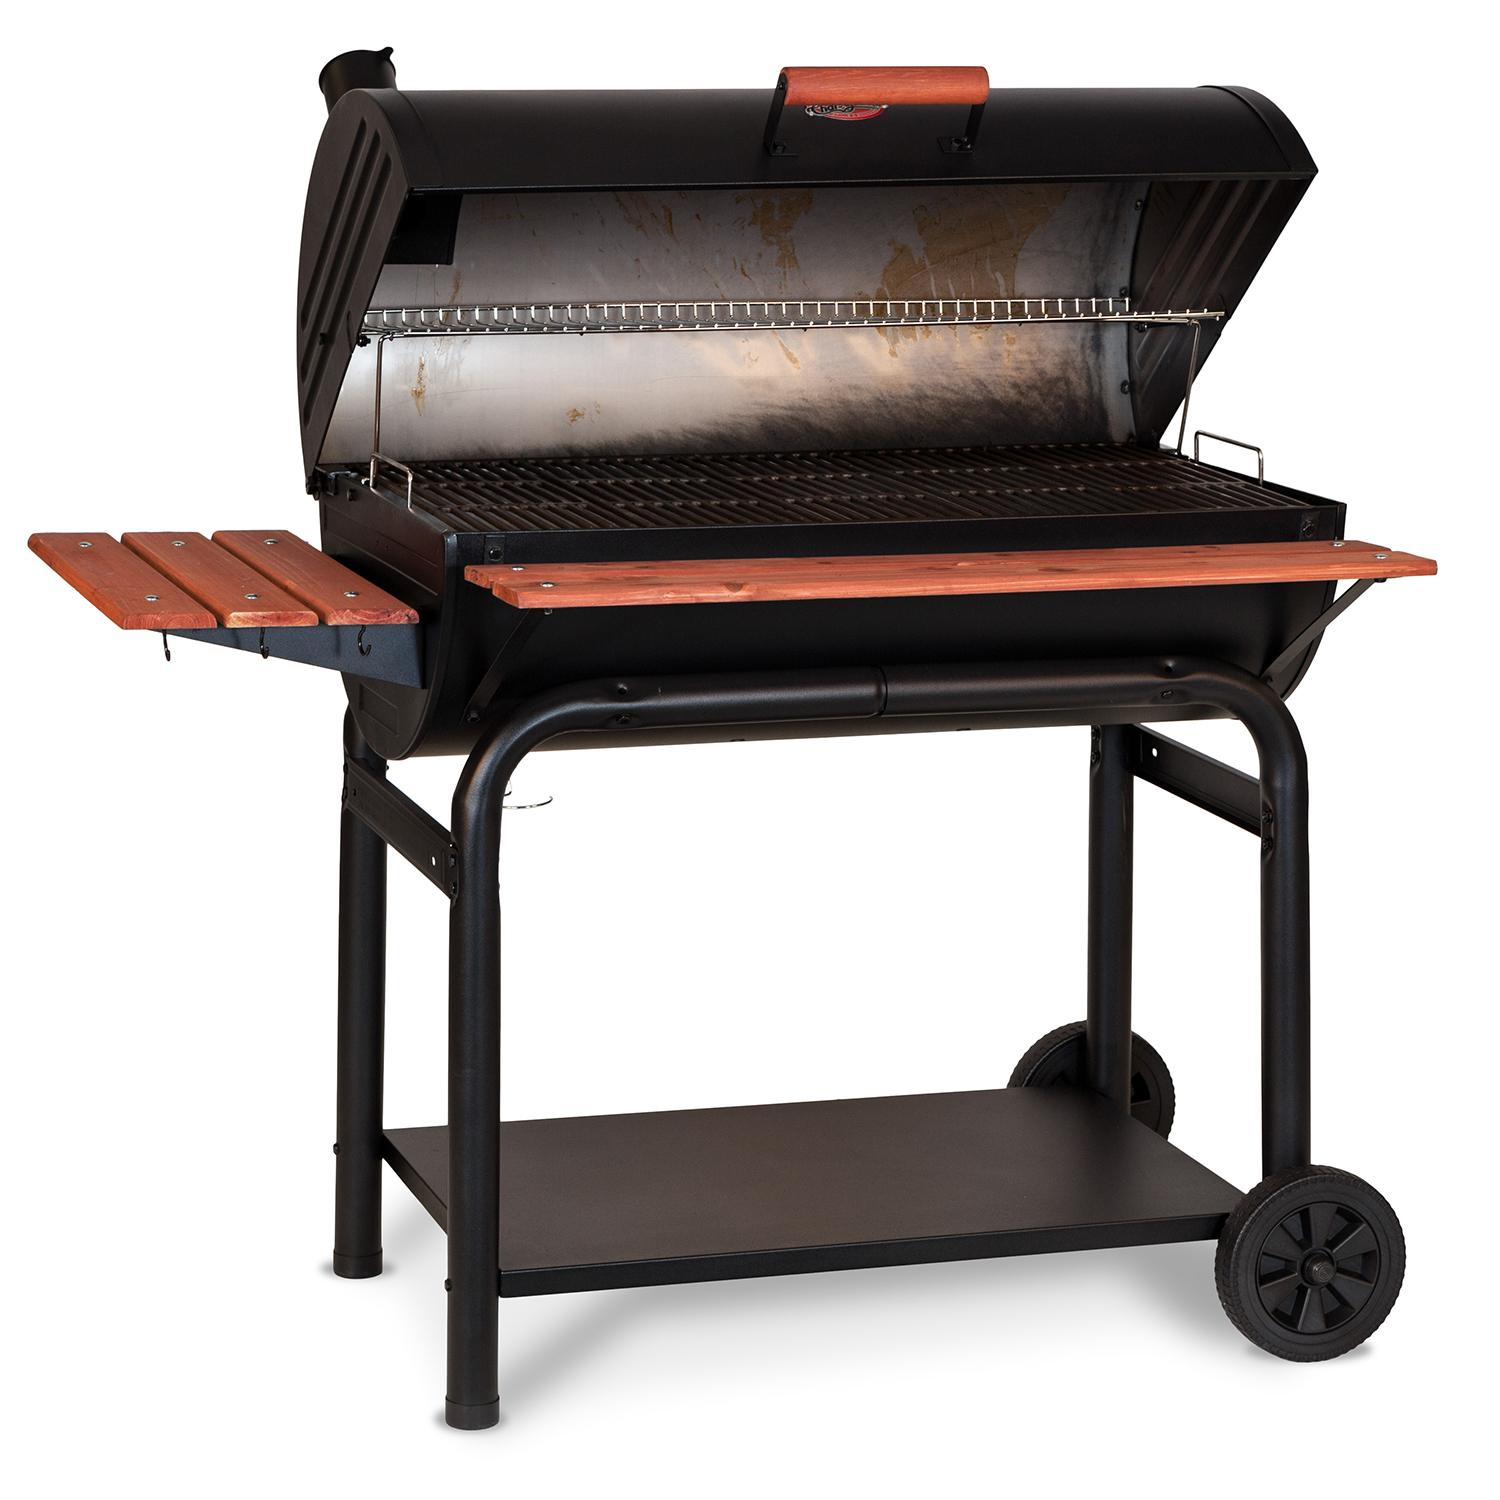 Amazon.com: Char-Griller 2123 Wrangler 635 Square Inch Charcoal Grill